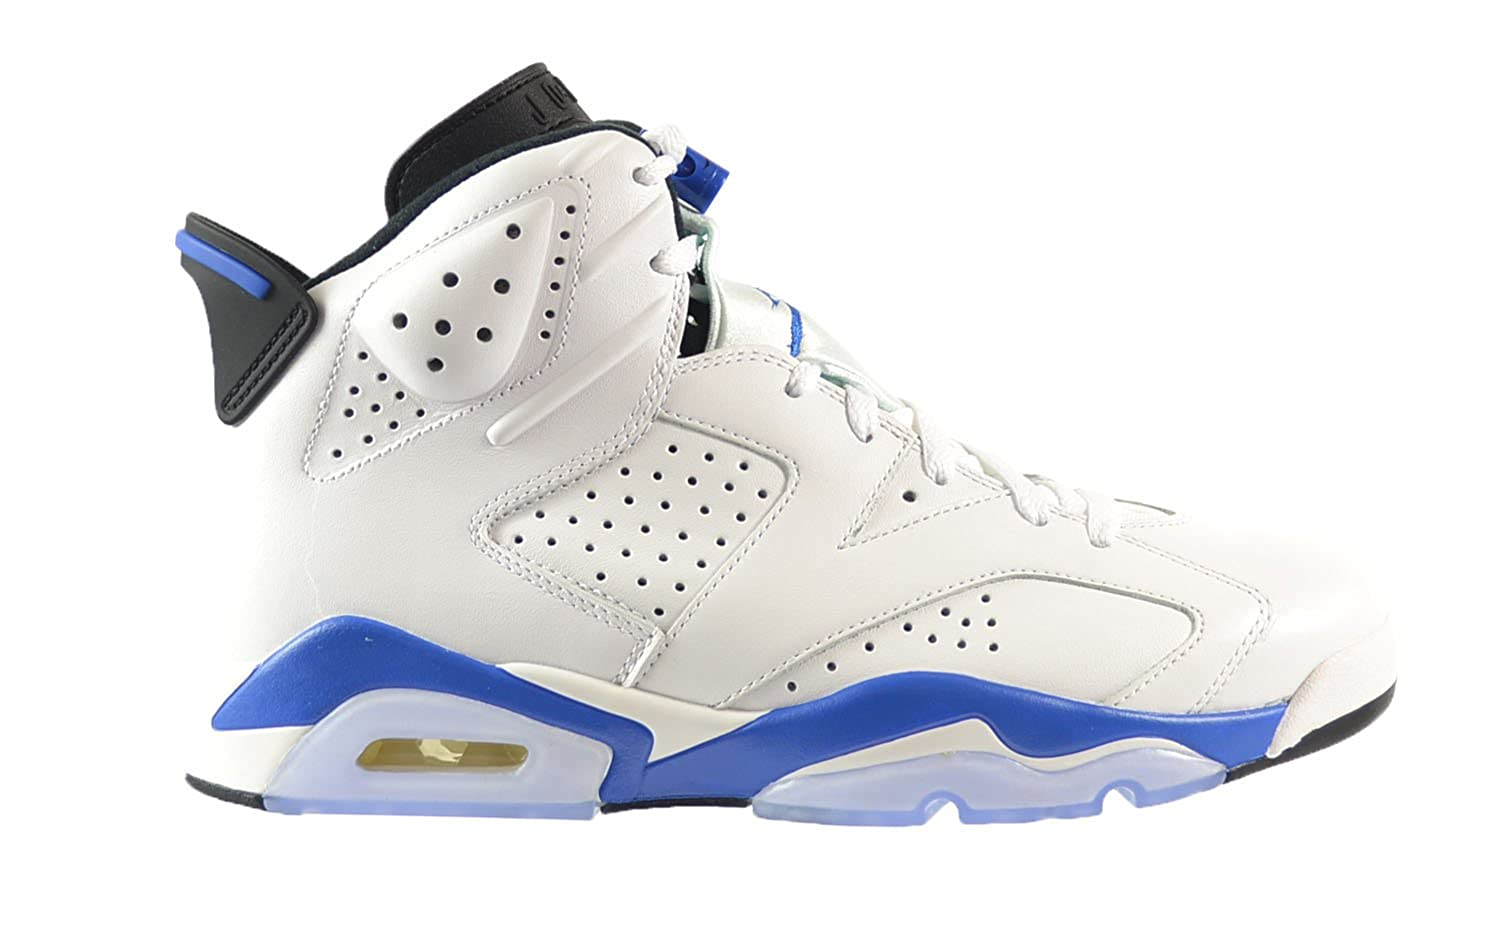 reputable site 1e14d ff5a1 Amazon.com   Jordan Air 6 Retro Men s Shoes White Sport Blue-Black  384664-107 (10 D(M) US)   Basketball